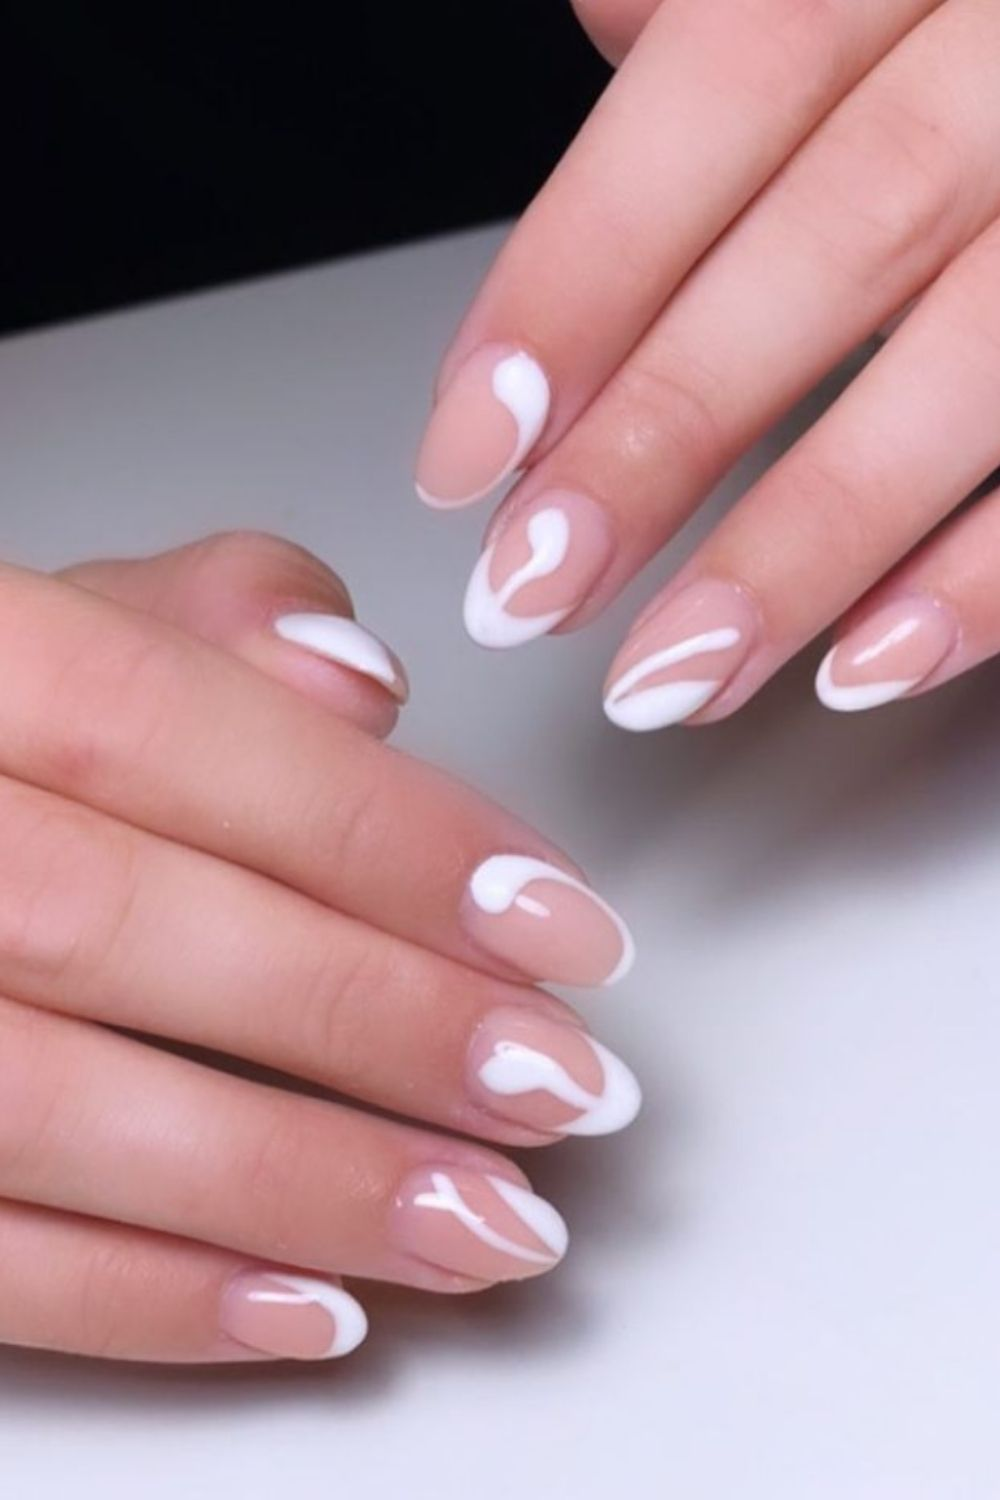 Pink and white almond-shaped nails designs